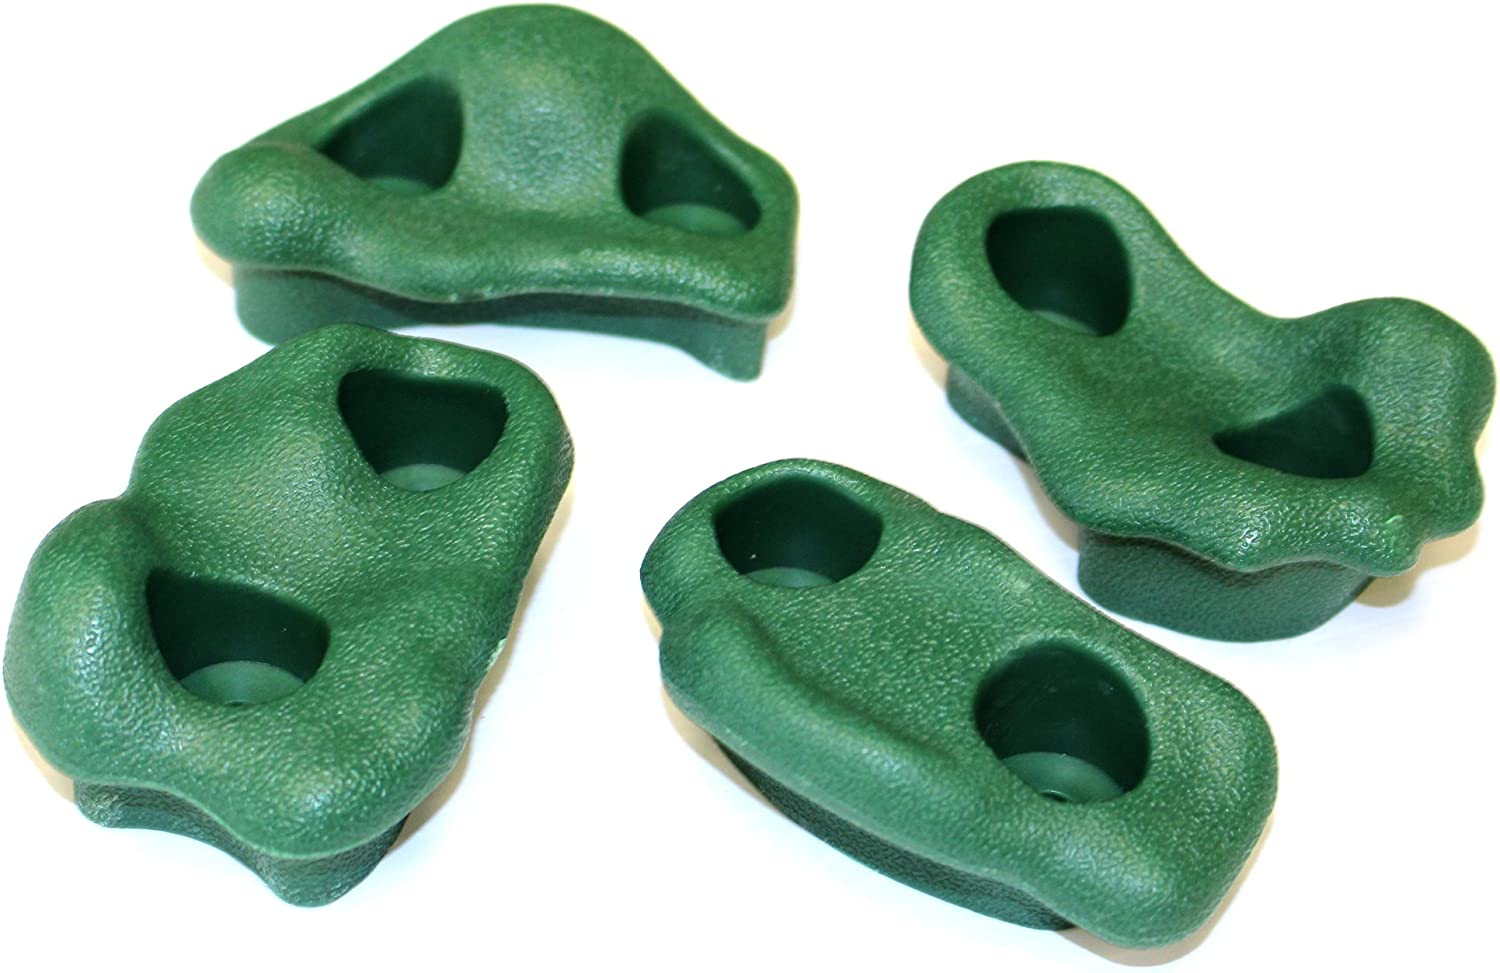 Eastern Jungle Gym Pack of 12 Large Textured Playground Rock Wall Climbing Hand Holds for Kids Green with Safe Mounting Hardware